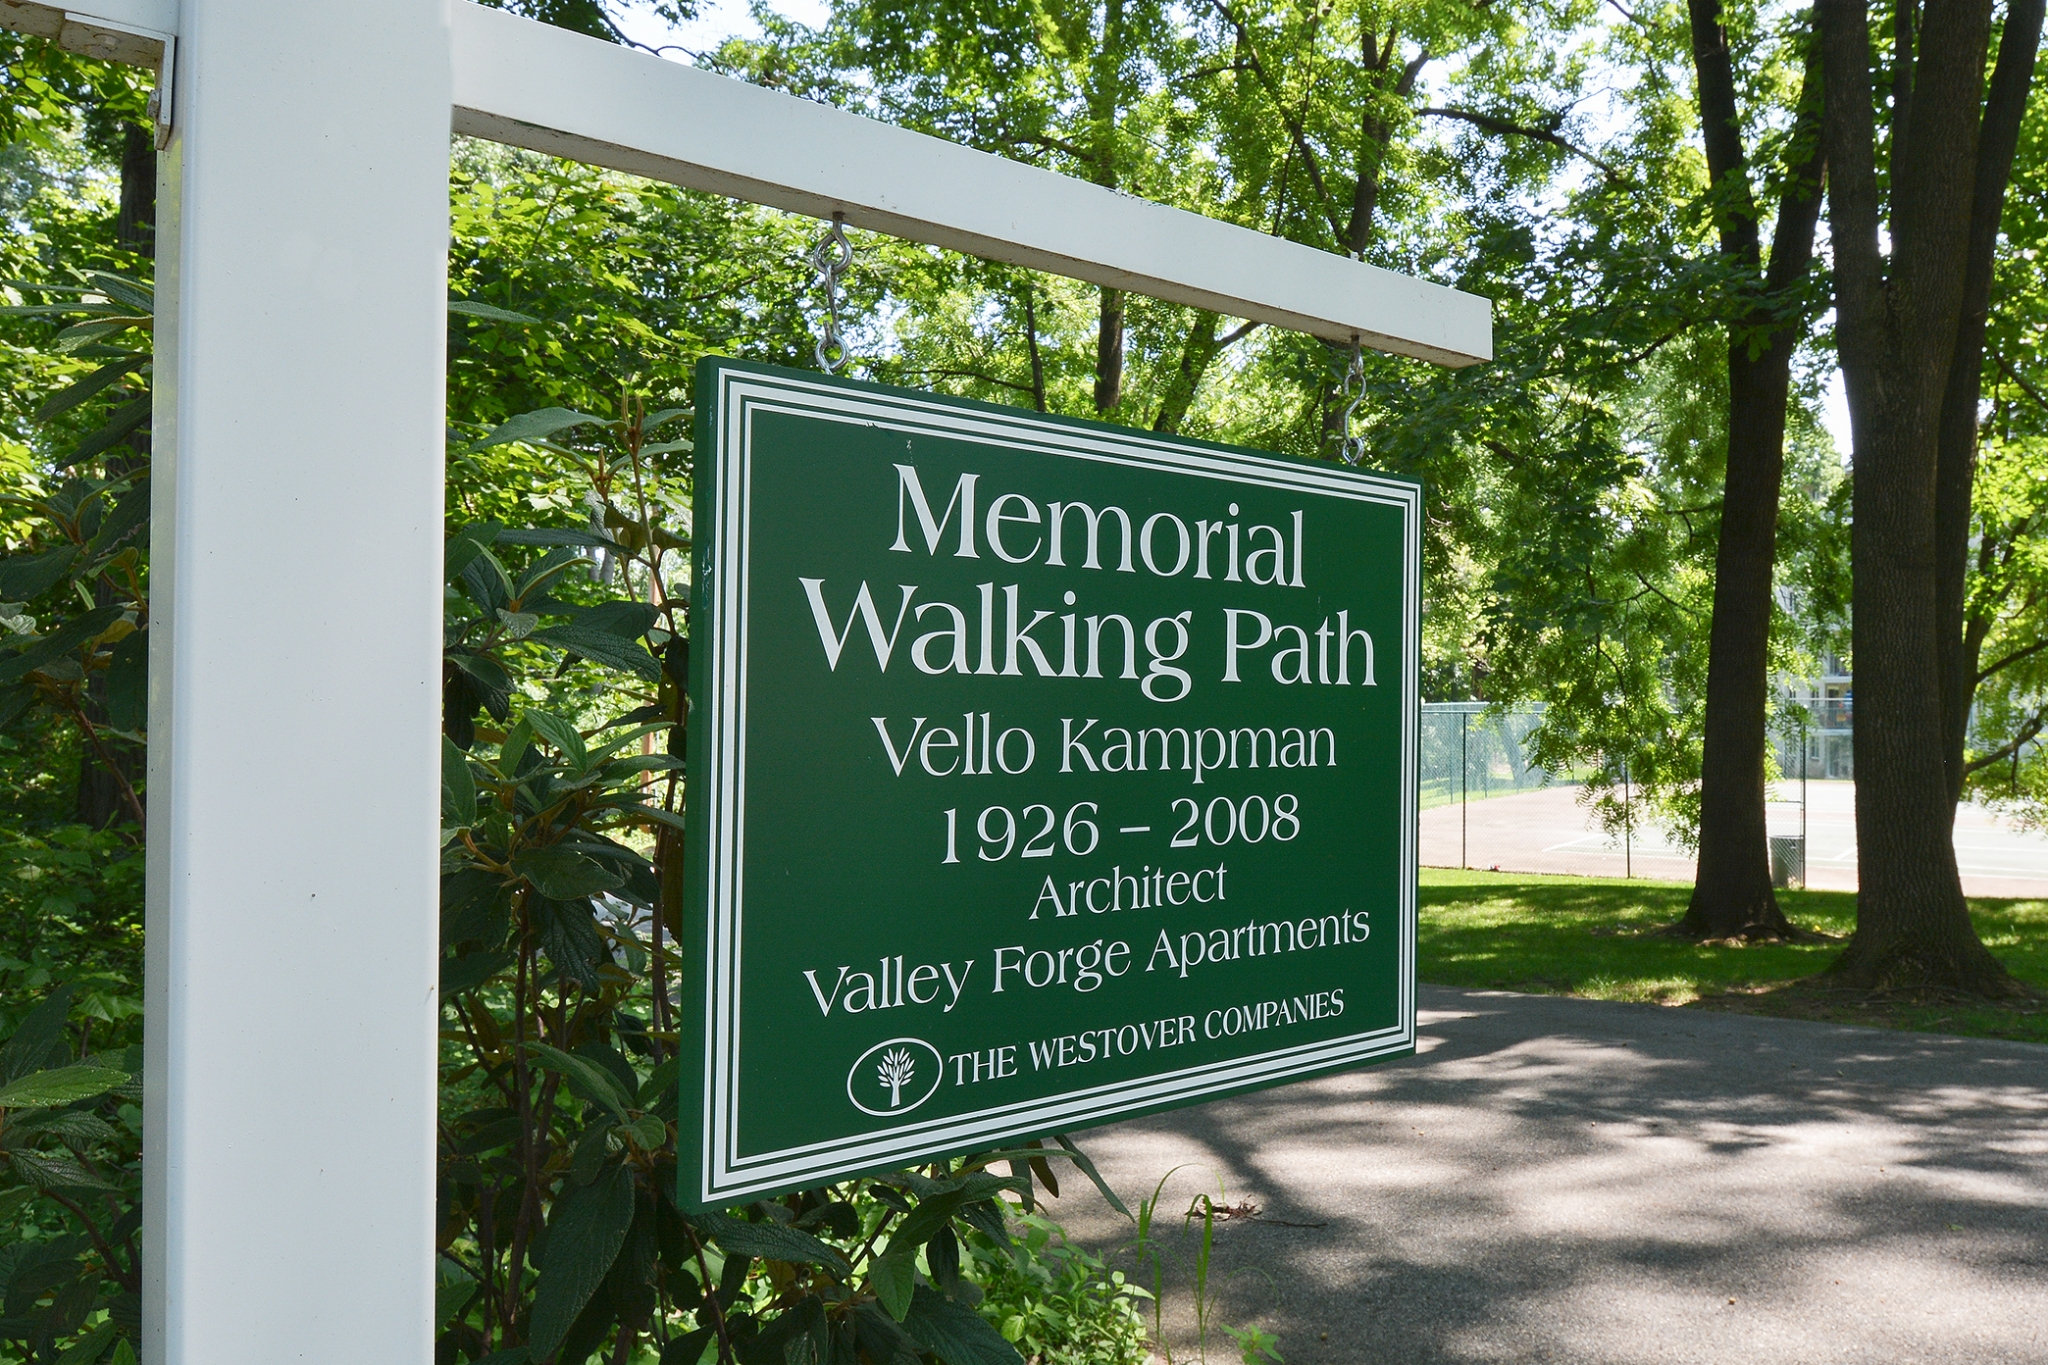 The Lafayette at Valley Forge Memorial Walking Path Green Sign | King of Prussia Apartment Rentals